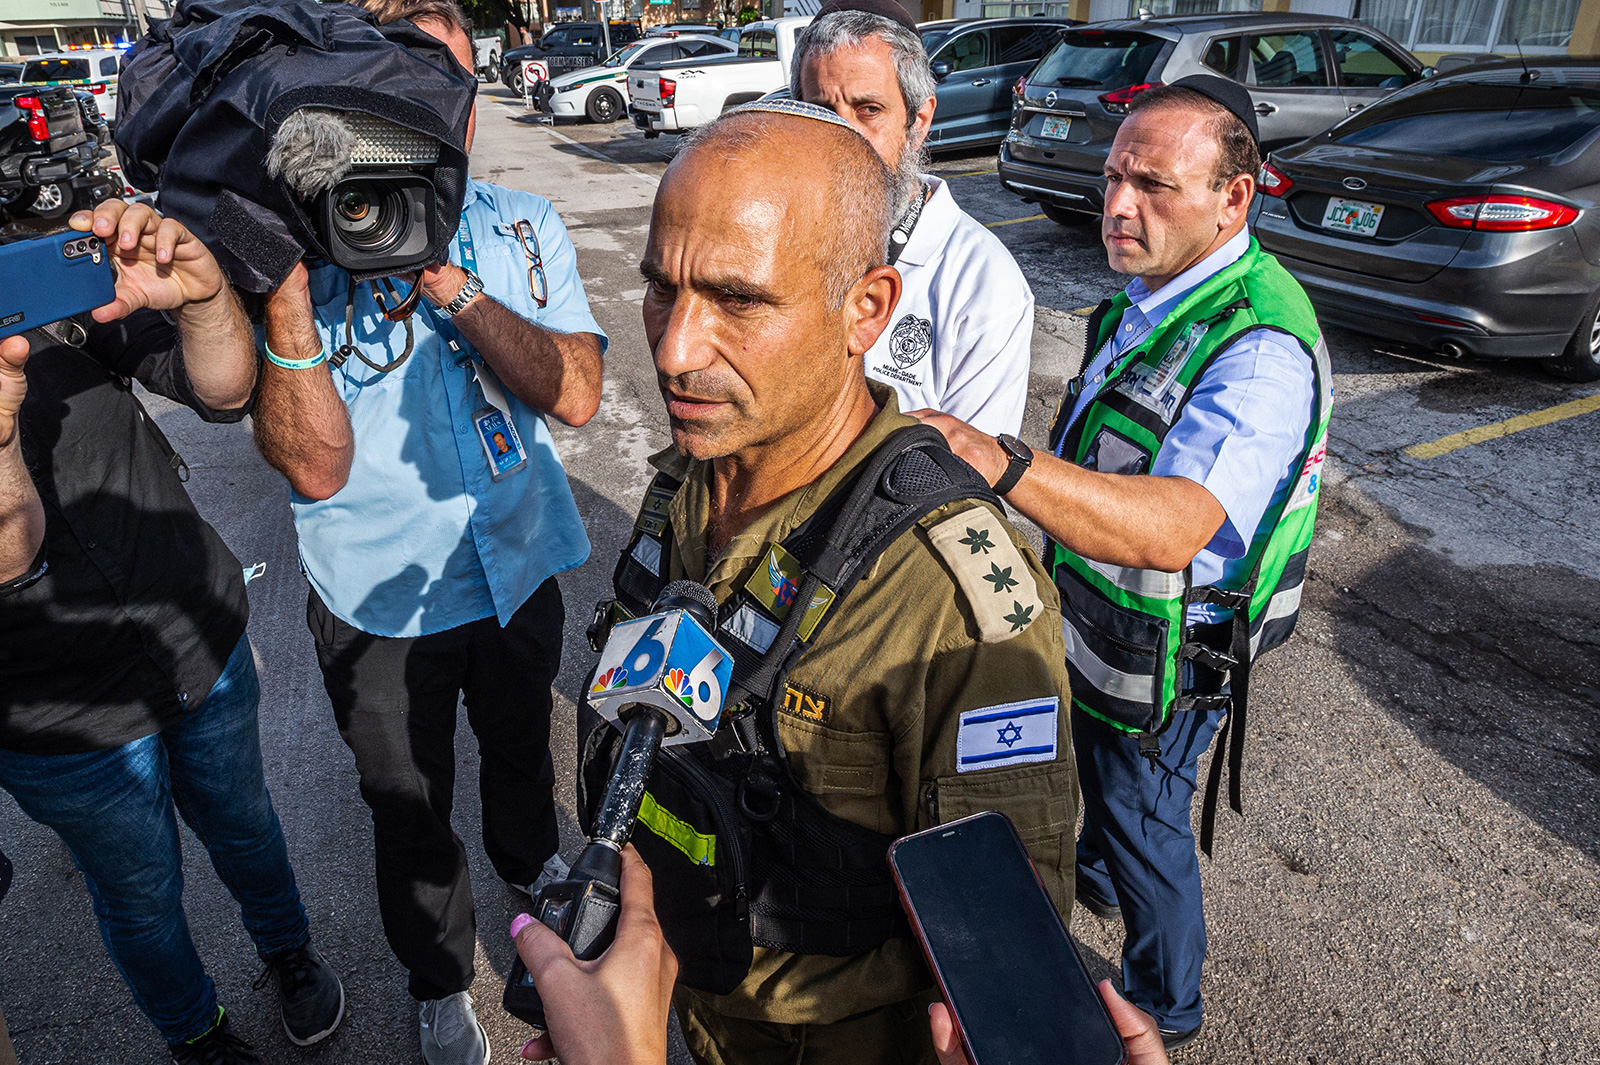 Golan Vach, Commander of the Israel Rescuers delegation arrives in the area near the partially collapsed 12-story Champlain Towers South condo building in the city of Surfside, Florida, on June 27.